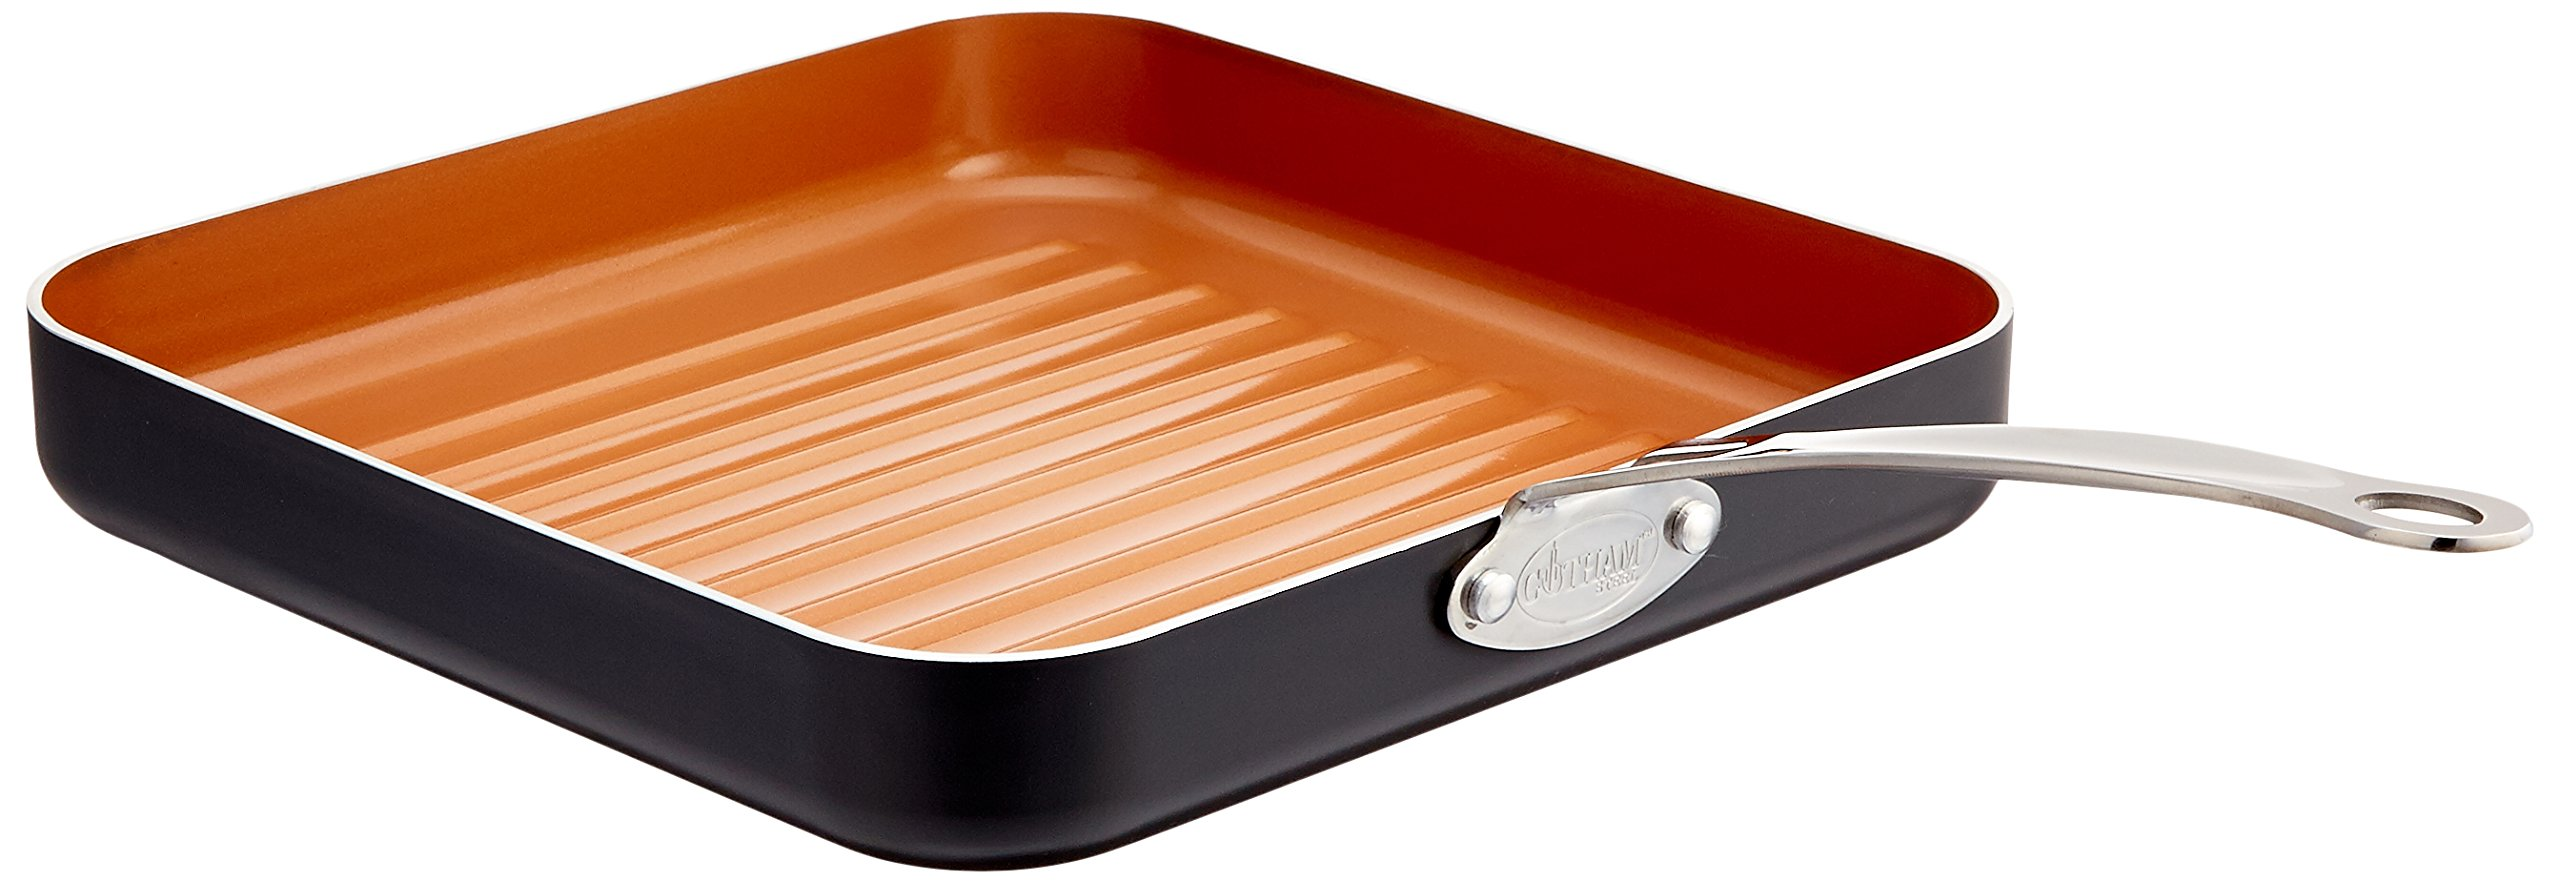 Gotham Steel Grill Pan - 10.5'' Square Aluminum Grill Pan with Nonstick Surface, Sear Ridges and Stainless Steel Handle, Dishwasher and Oven Safe by GOTHAM STEEL